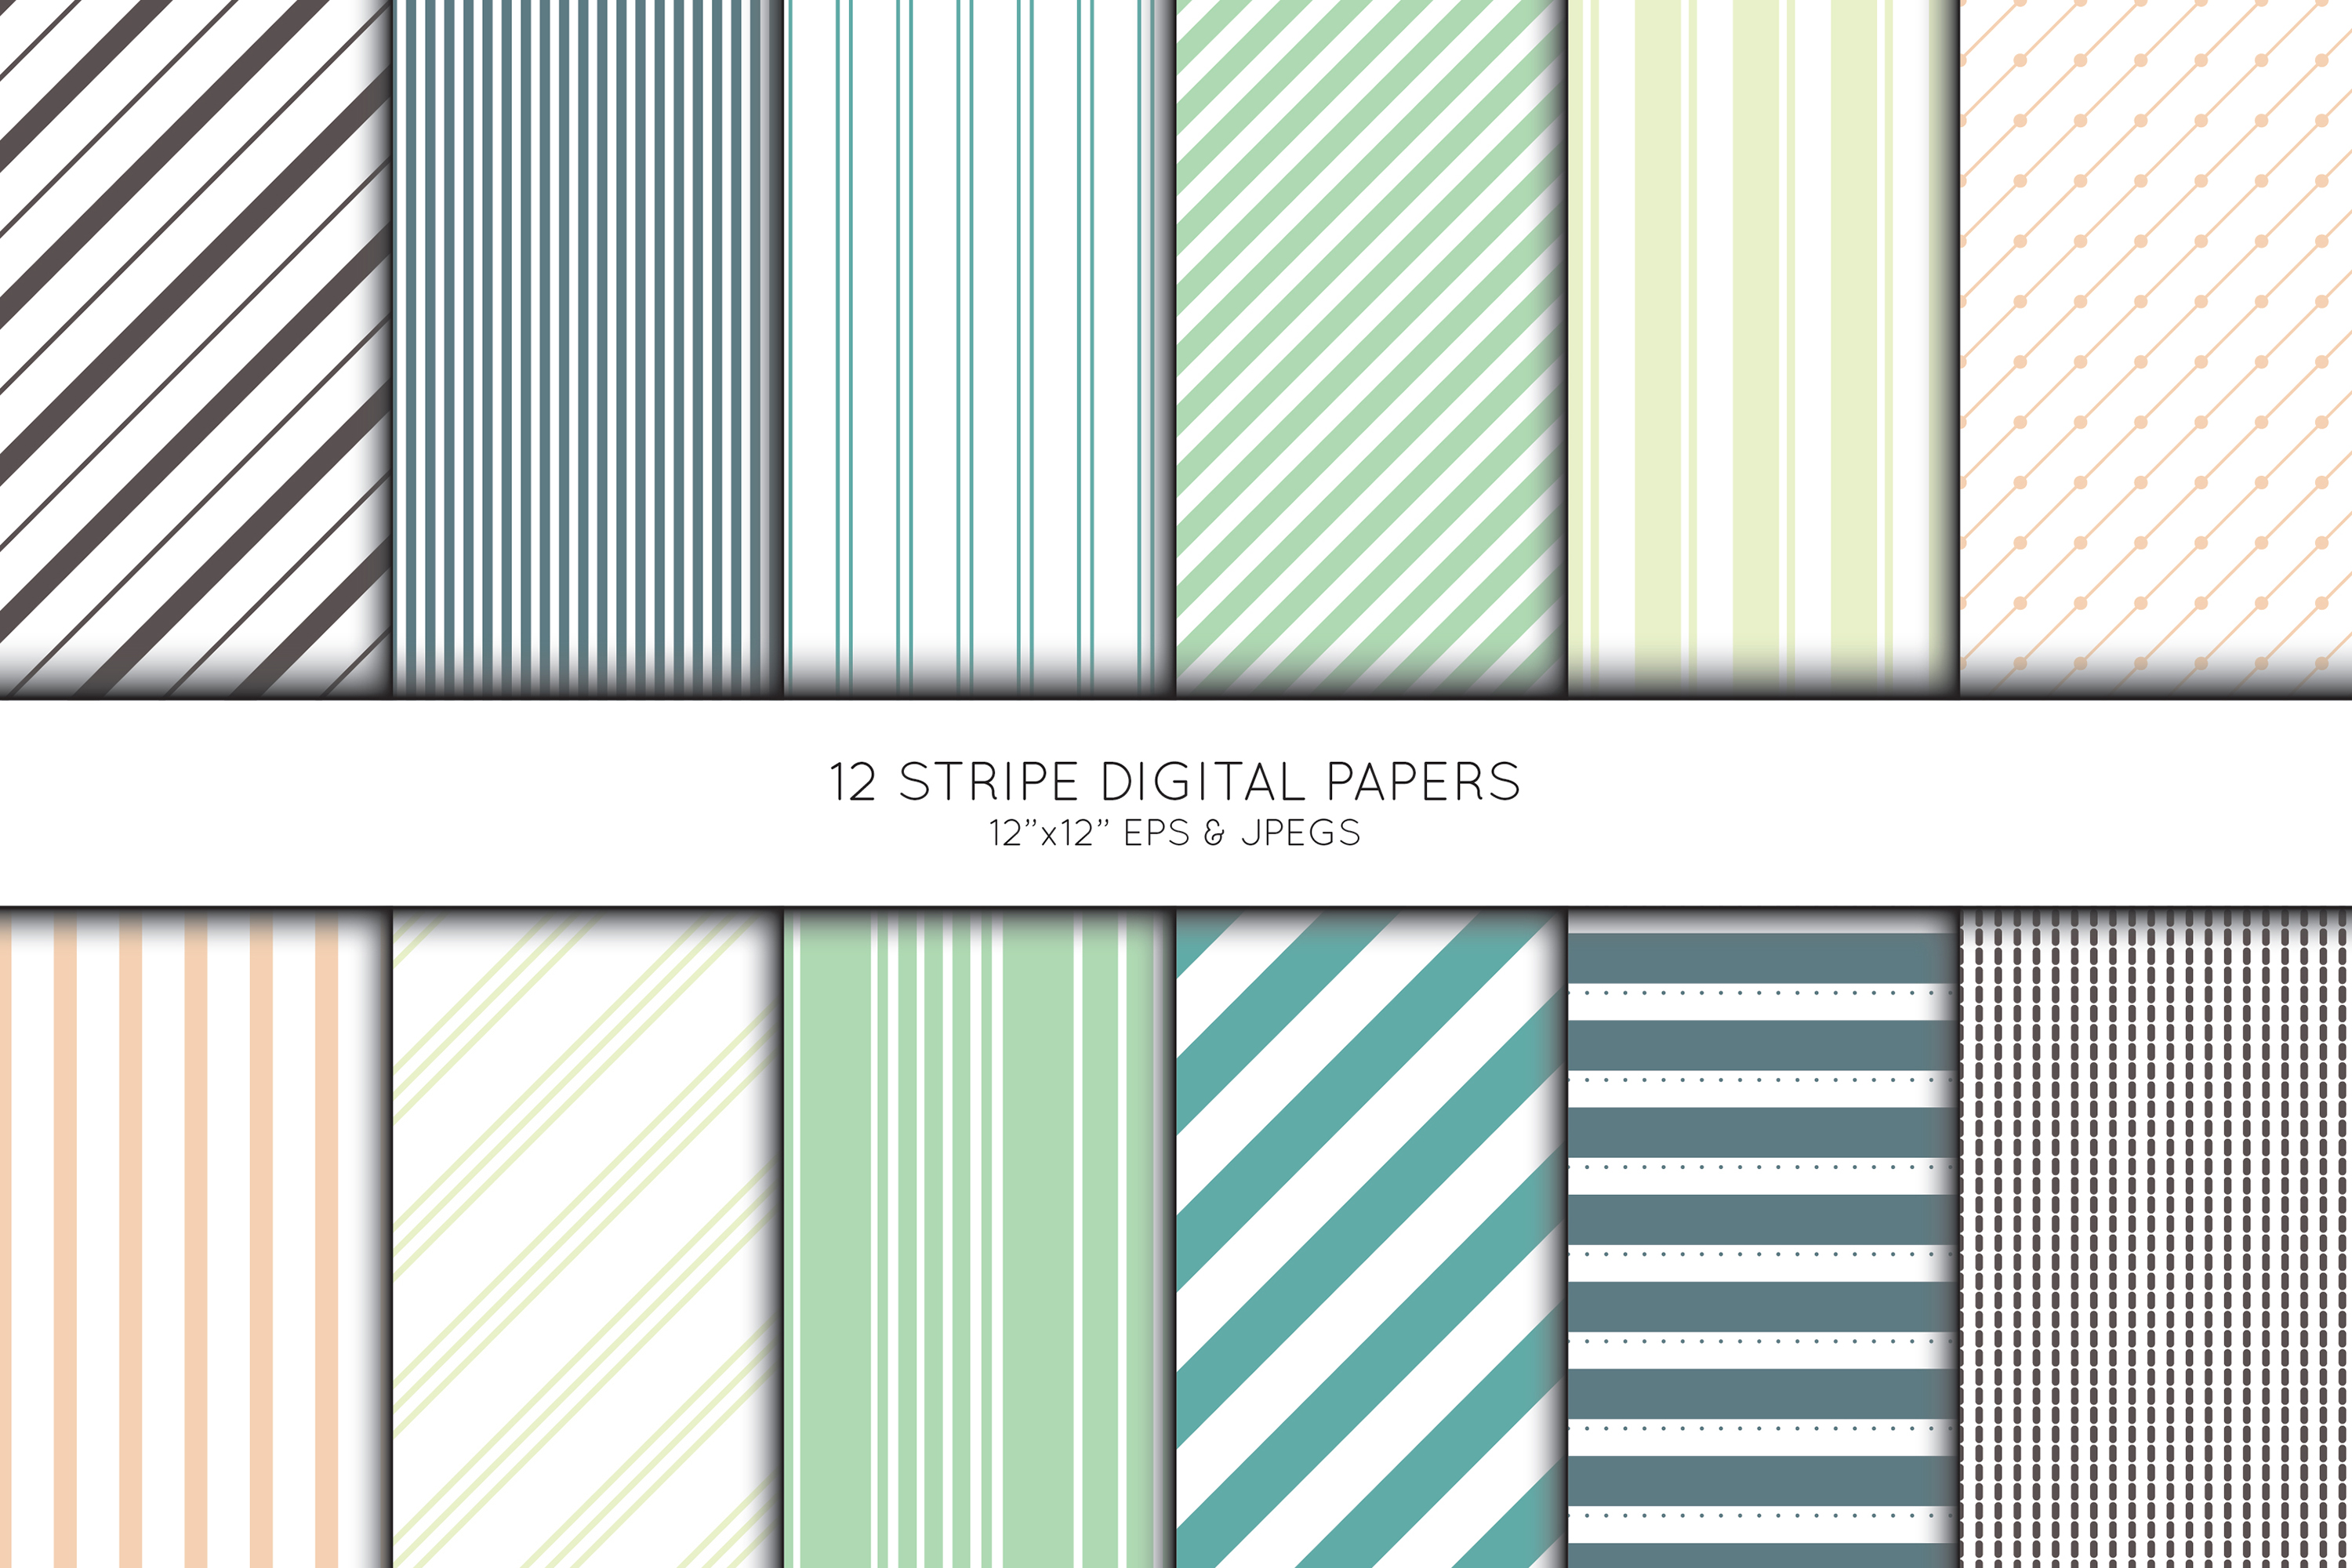 Stripe Digital Paper, Striped Scrapbook paper example image 1